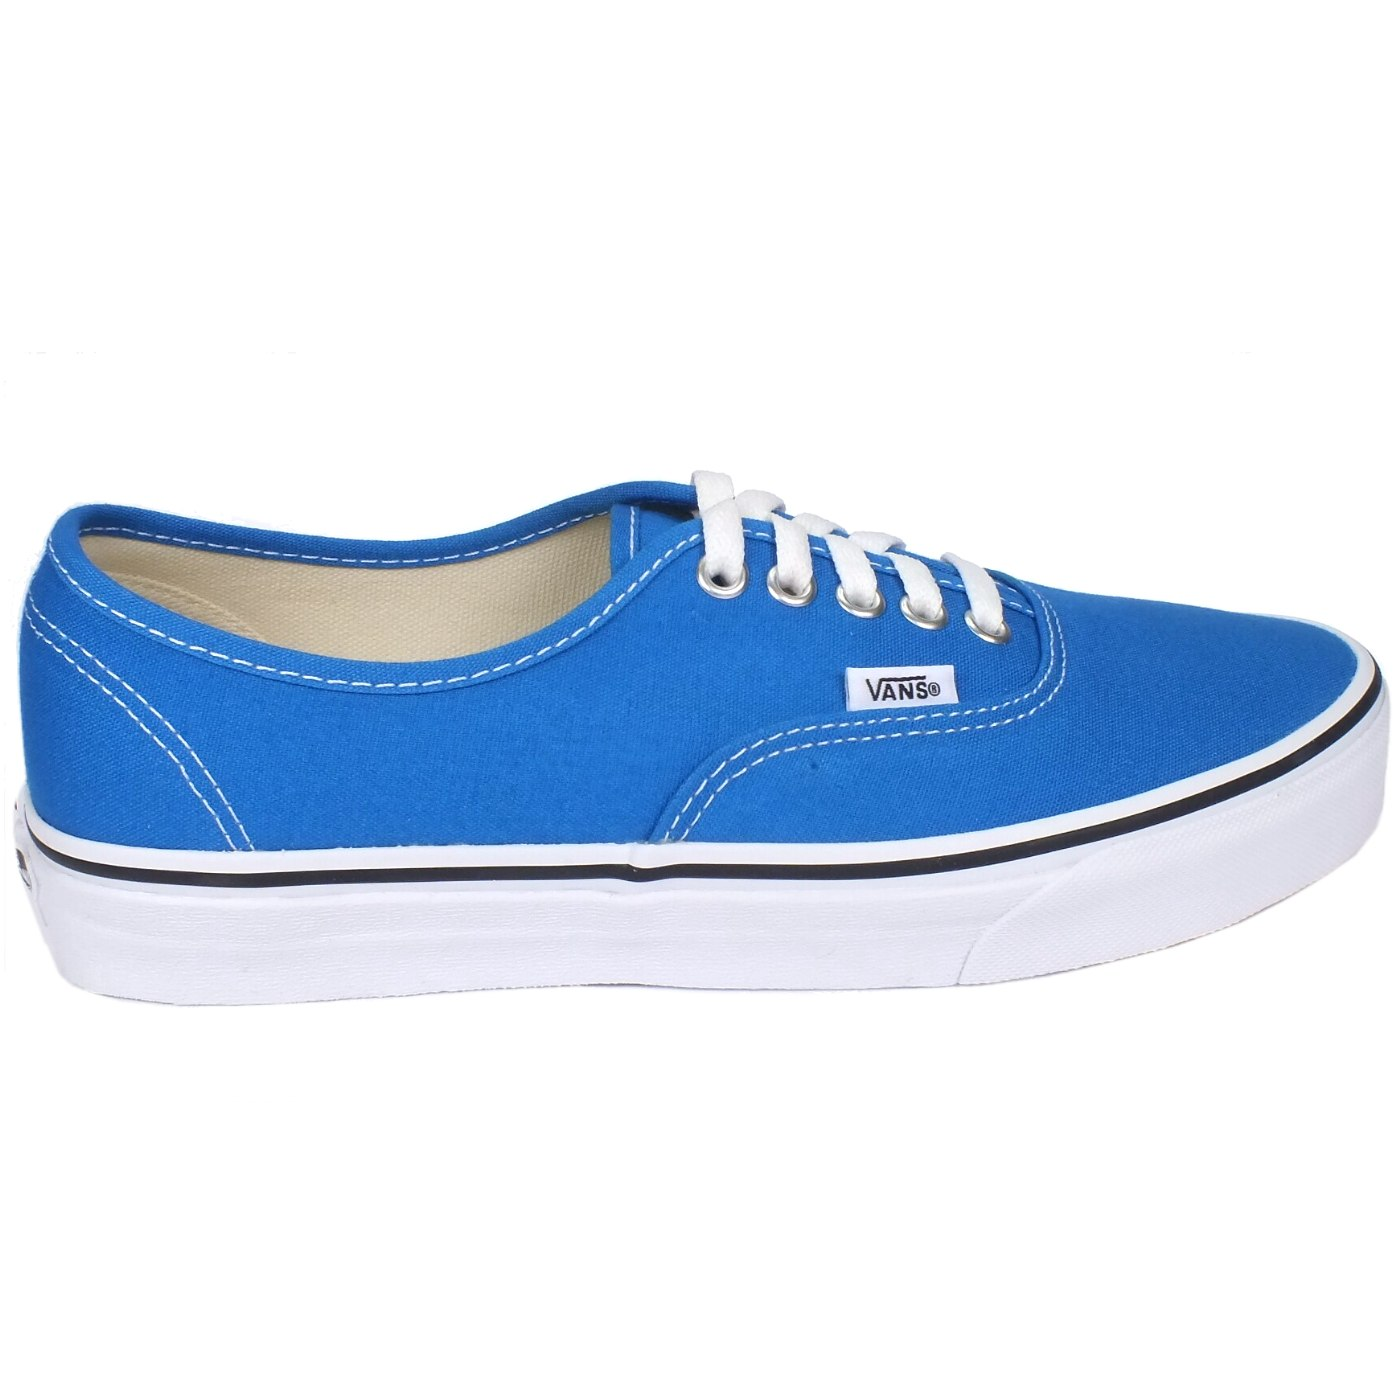 vans authentic schuhe turnschuhe sneaker damen herren diverse farben ebay. Black Bedroom Furniture Sets. Home Design Ideas